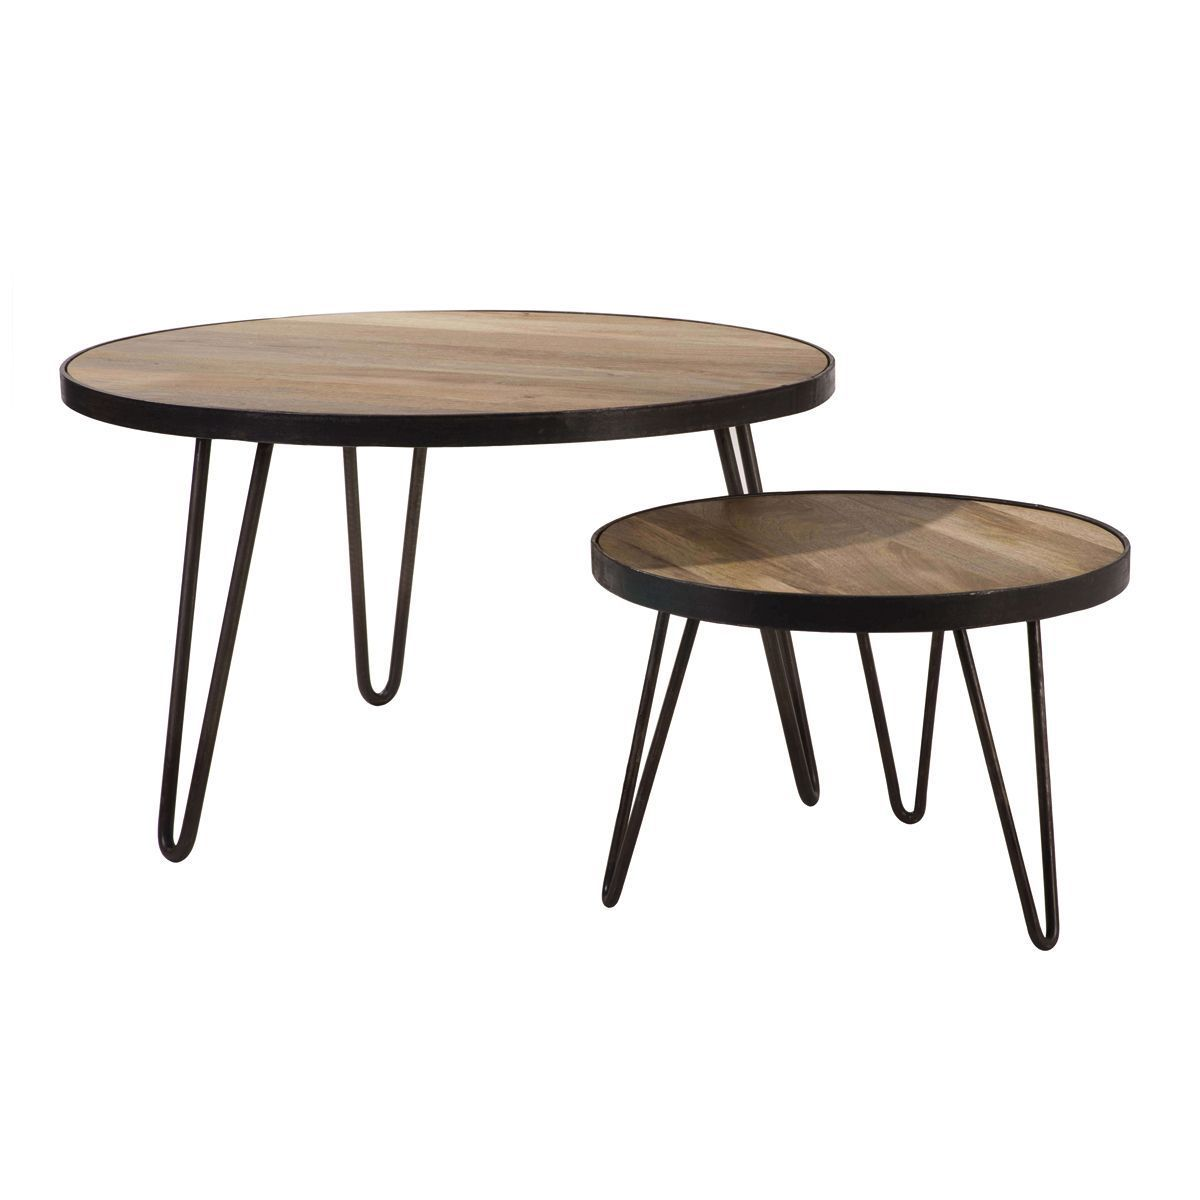 Table Basse Ronde Design Industriel D50 X H35 Cm Atelier Table Basse Ronde Design Industriel Et Table Basse